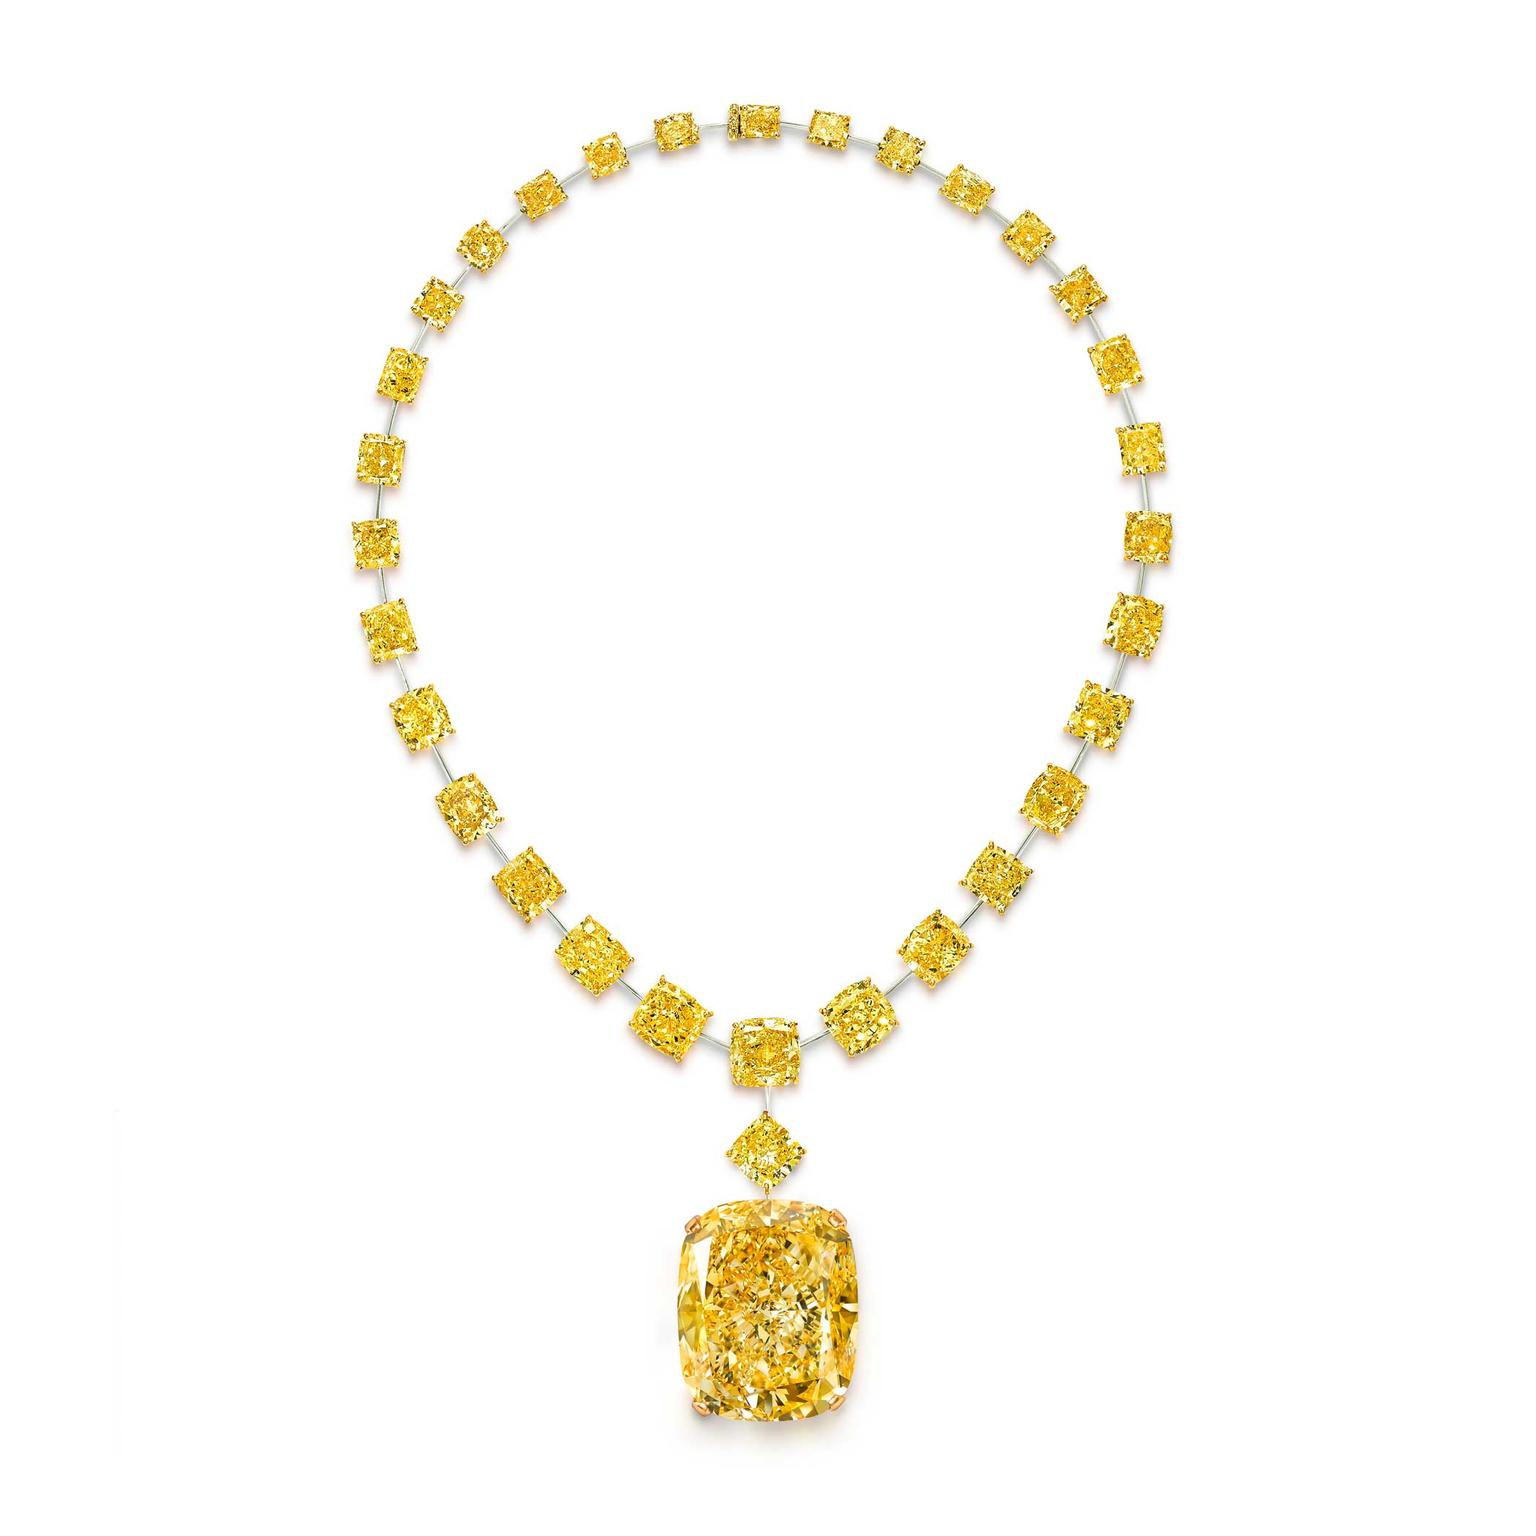 Graff Golden Empress yellow diamond necklace